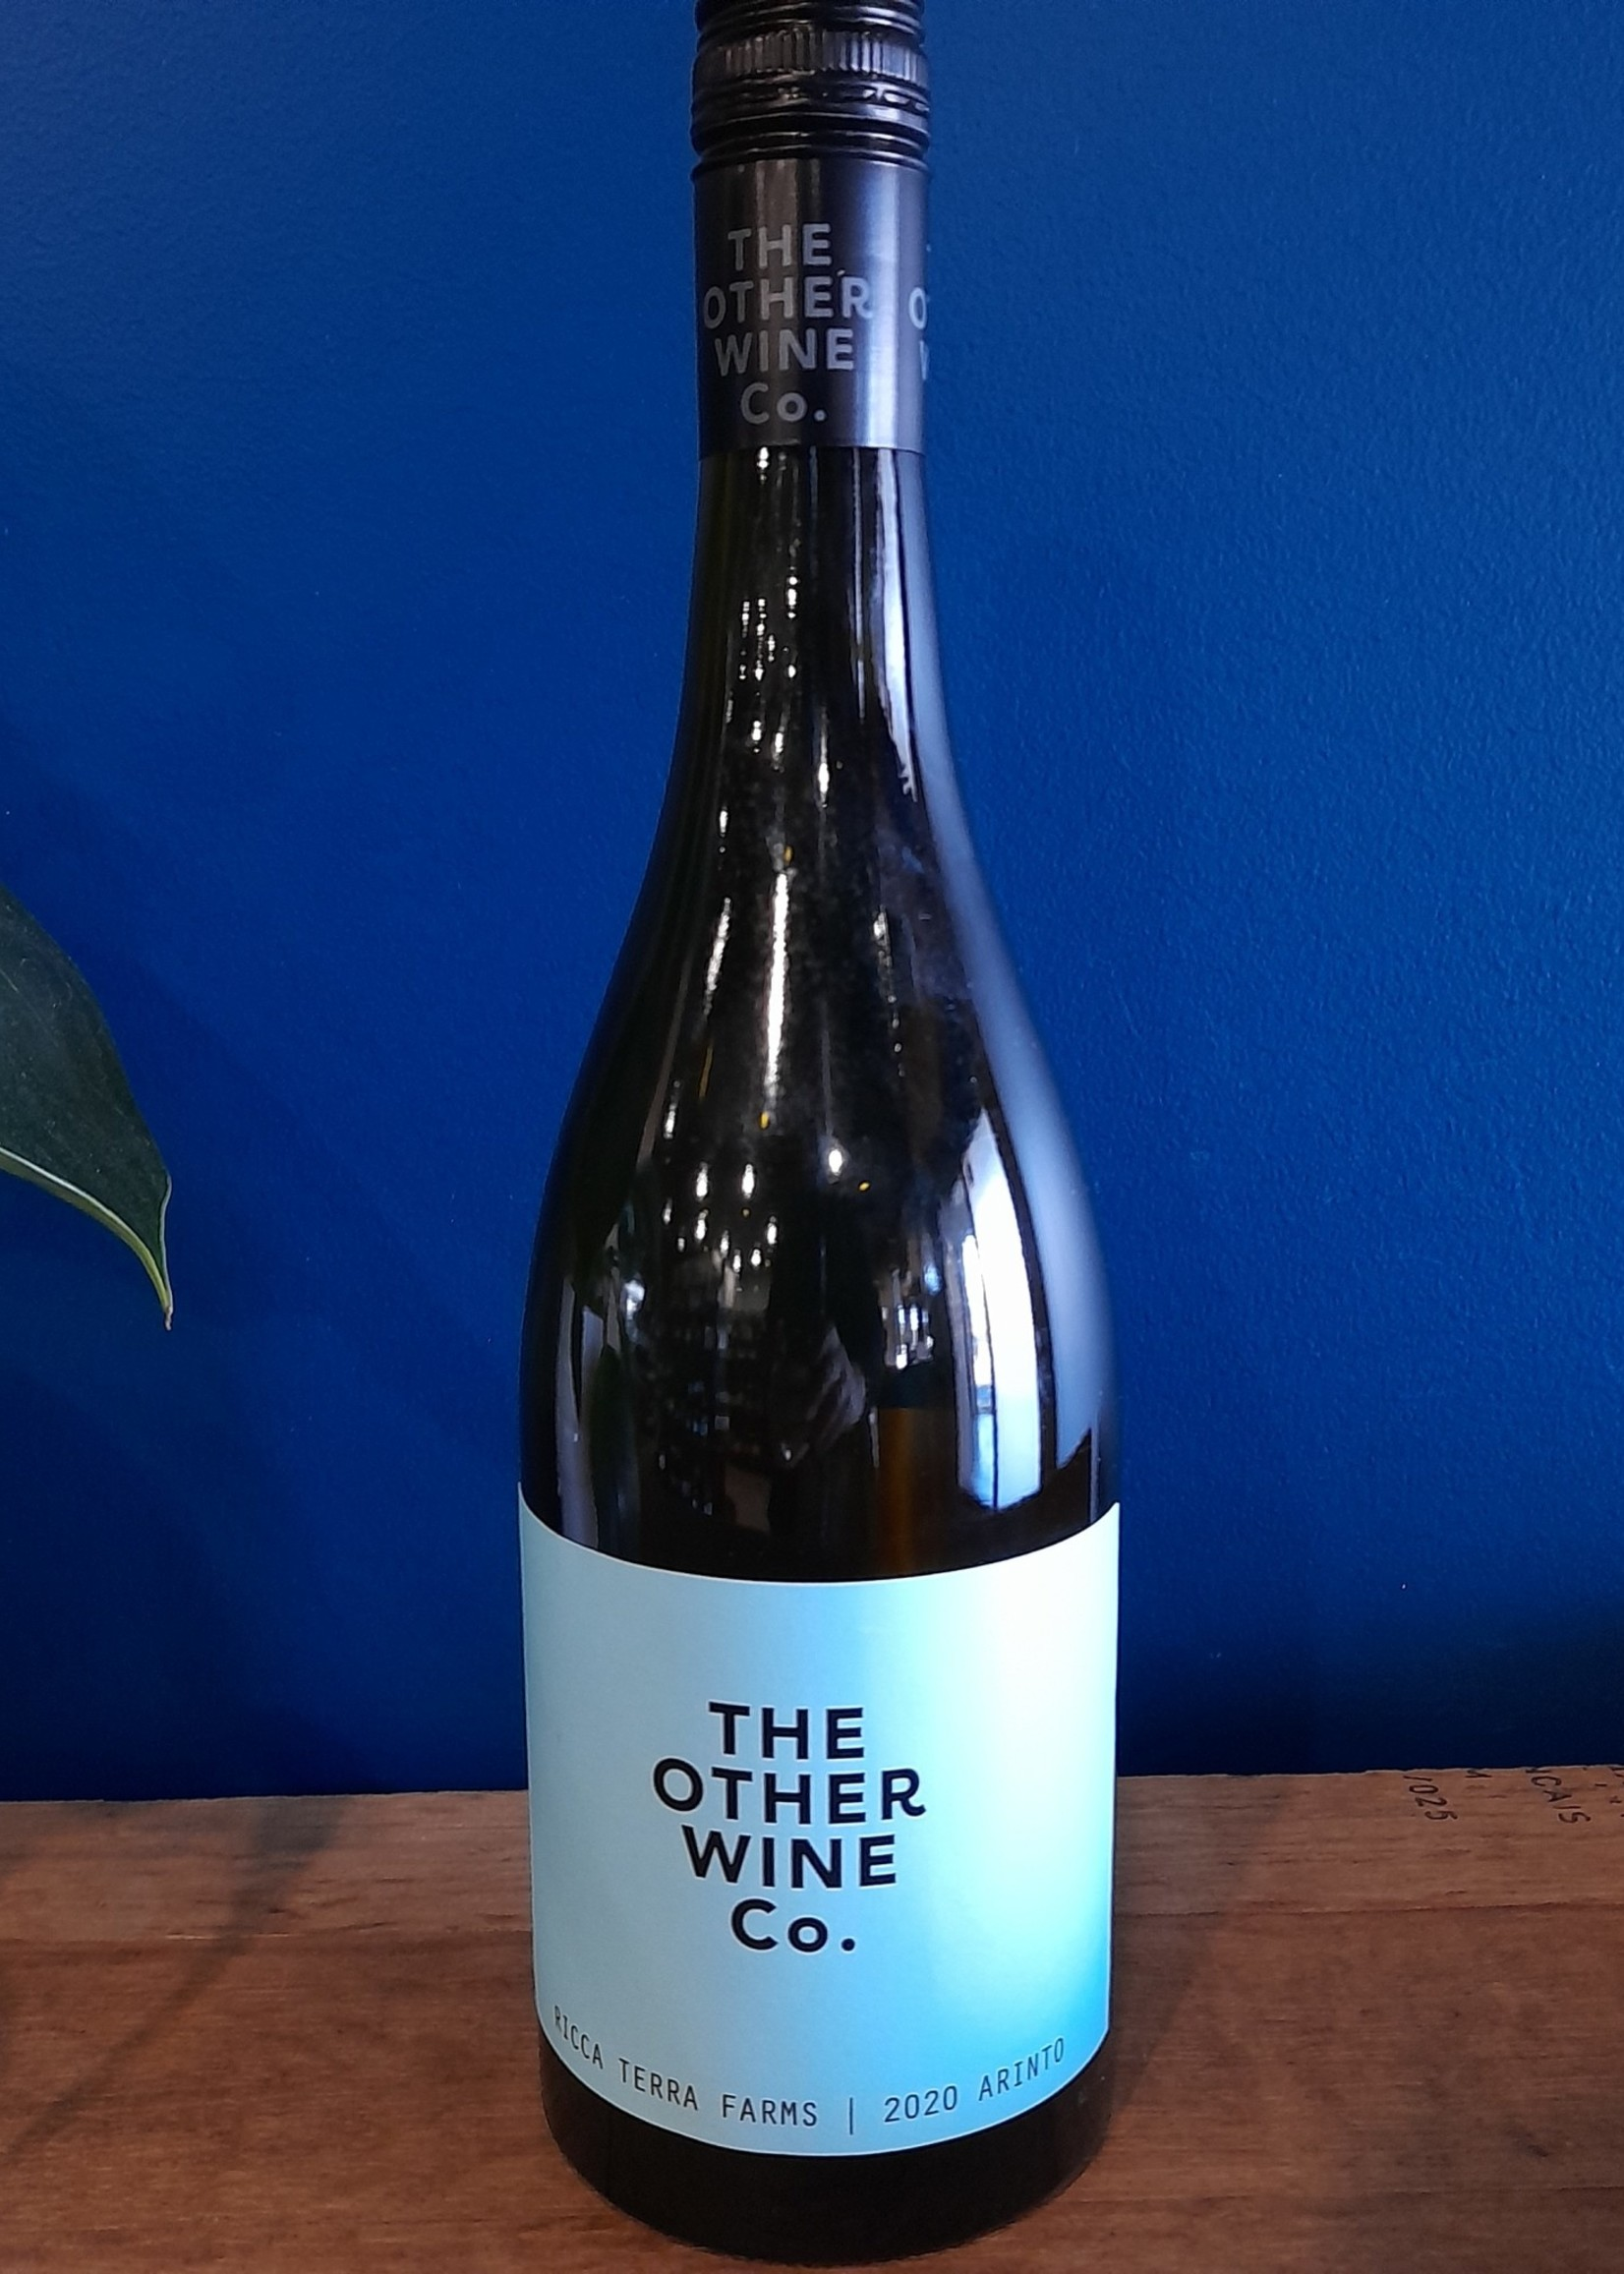 The Other Wine Co. The Other Wine Co. 2020 Arinto